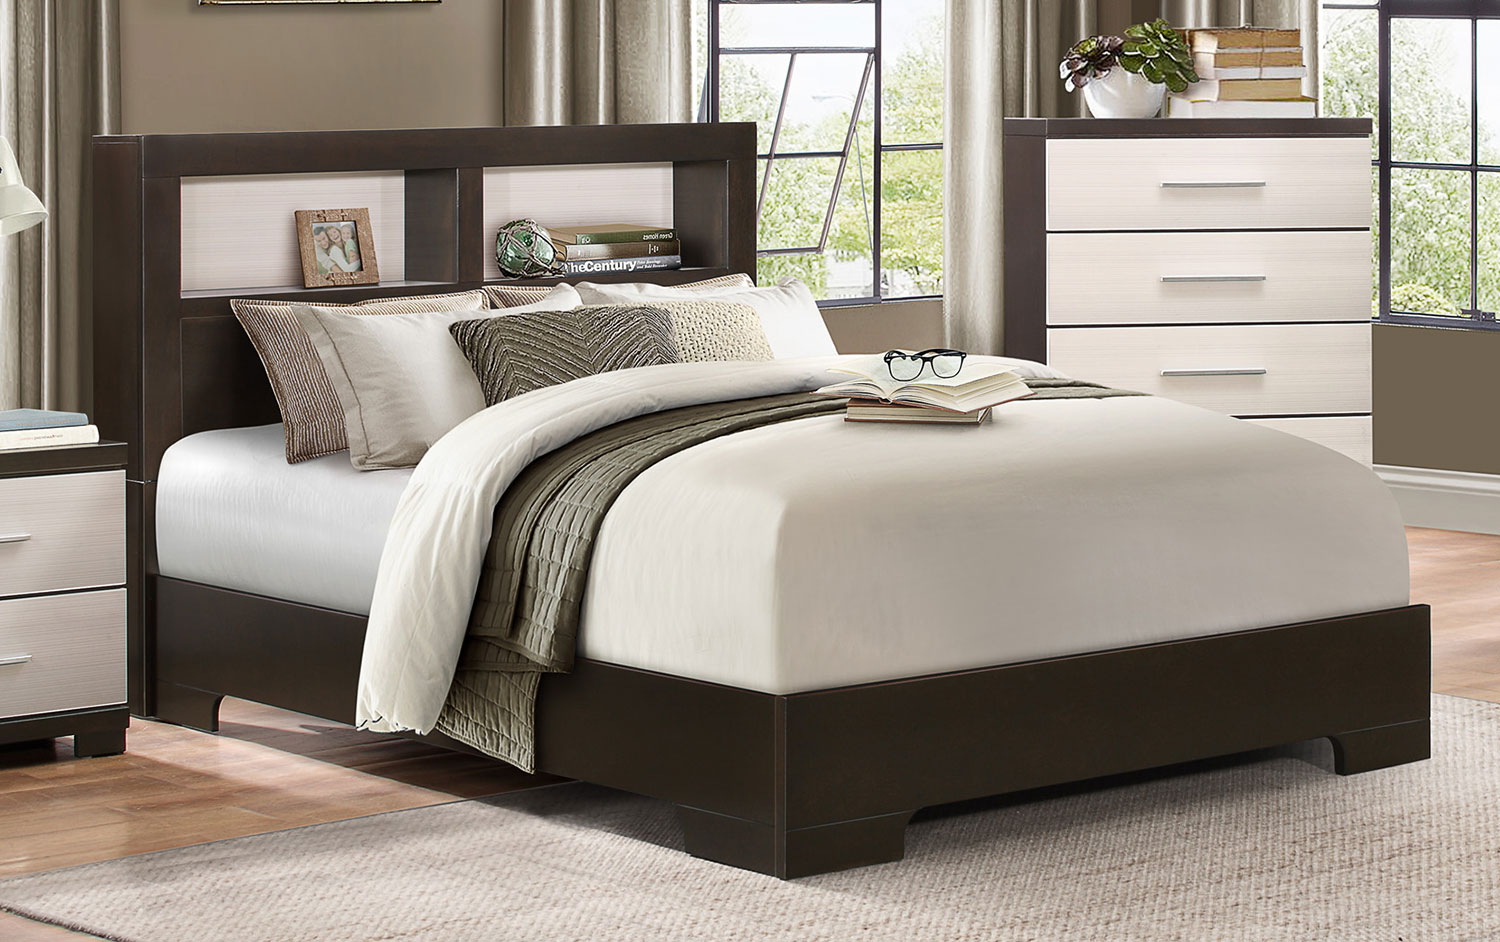 Homelegance Pell Low Profile Storage Bookcase Bed - Two-tone Espresso/White